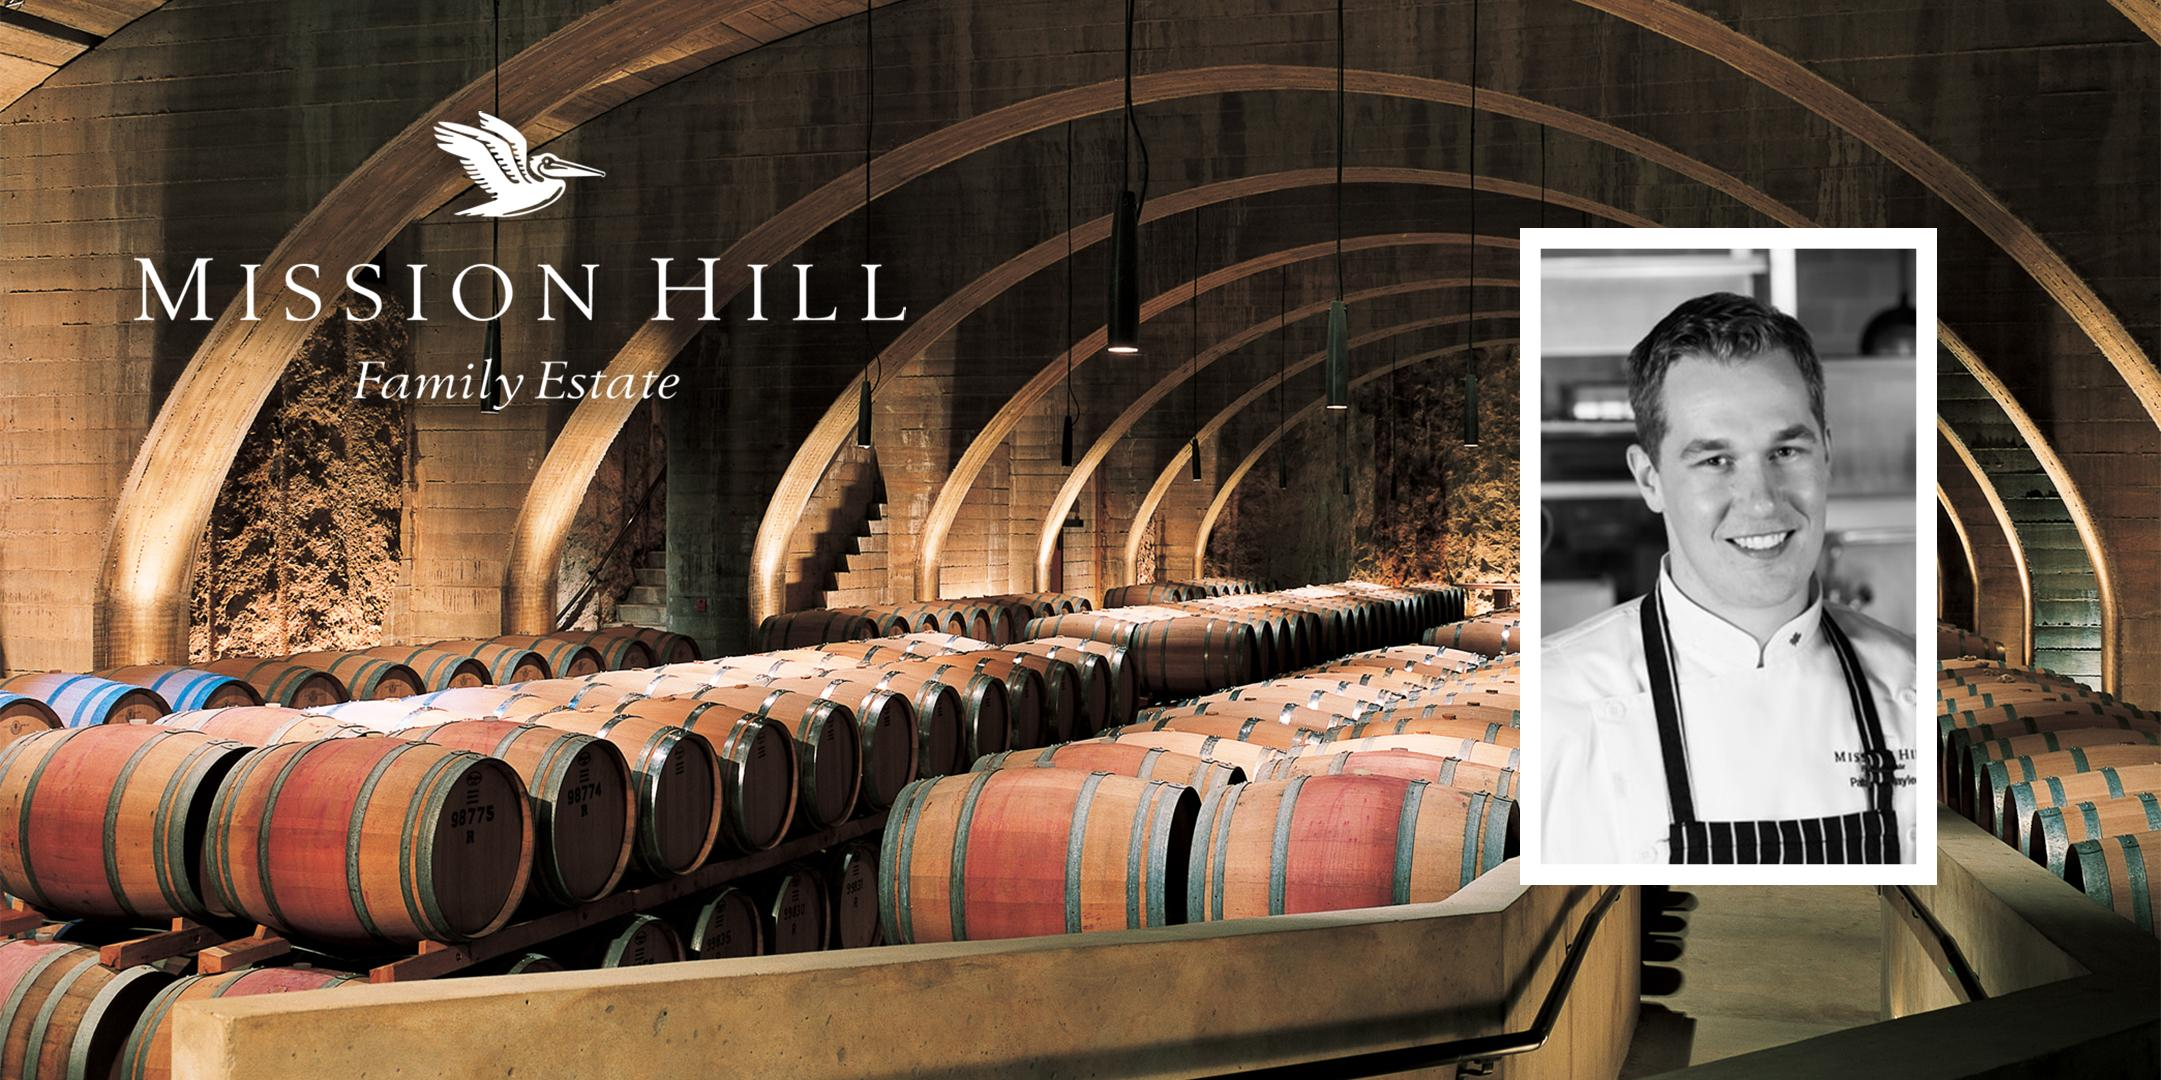 Mission Hill Family Estate and Chef Patrick Gayler